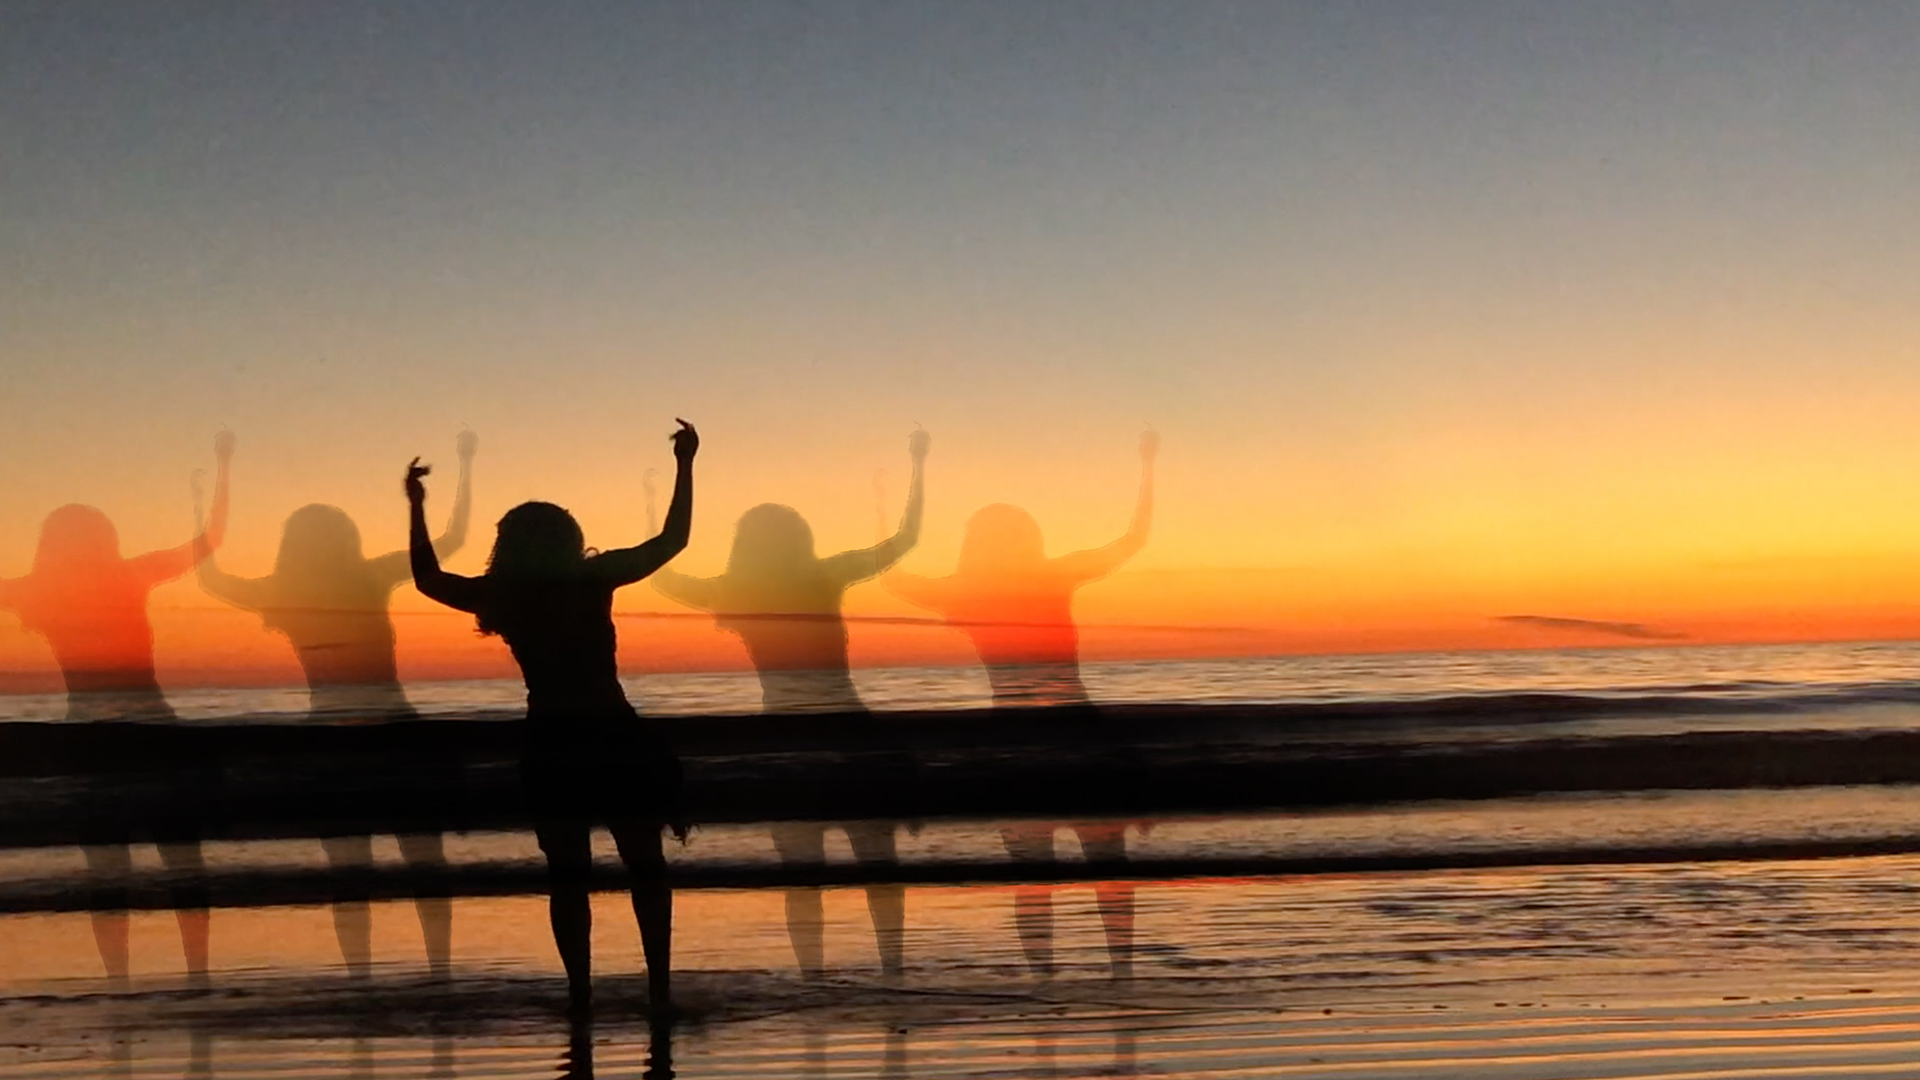 A dancer holds their hands above their head, standing on a beach at sunset.